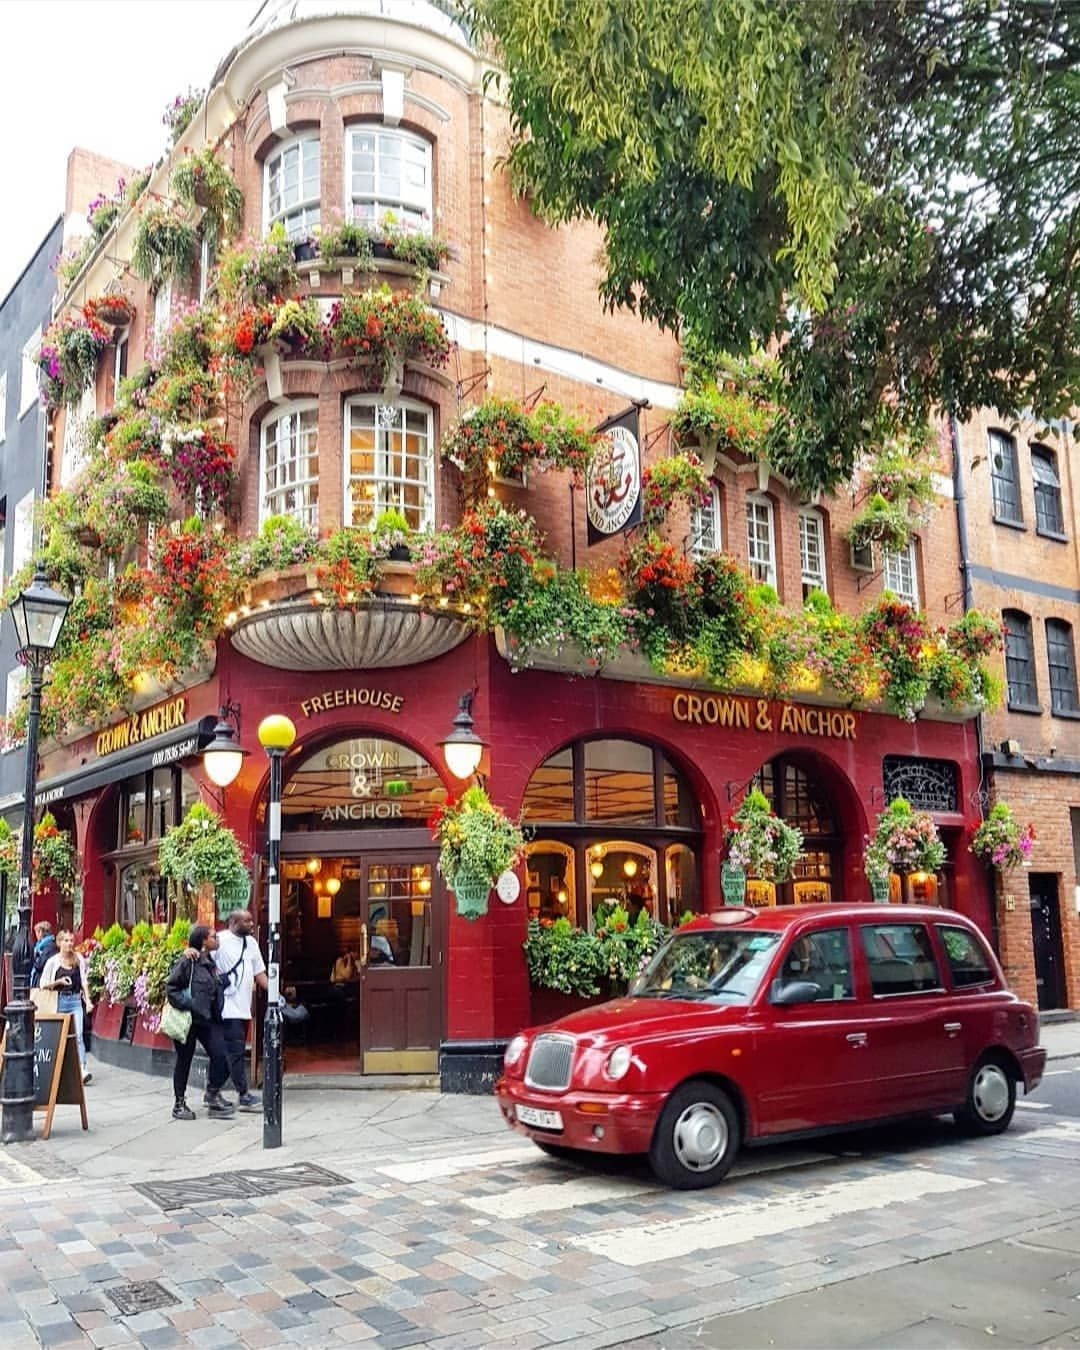 Image may contain tree and outdoor London pubs, Covent